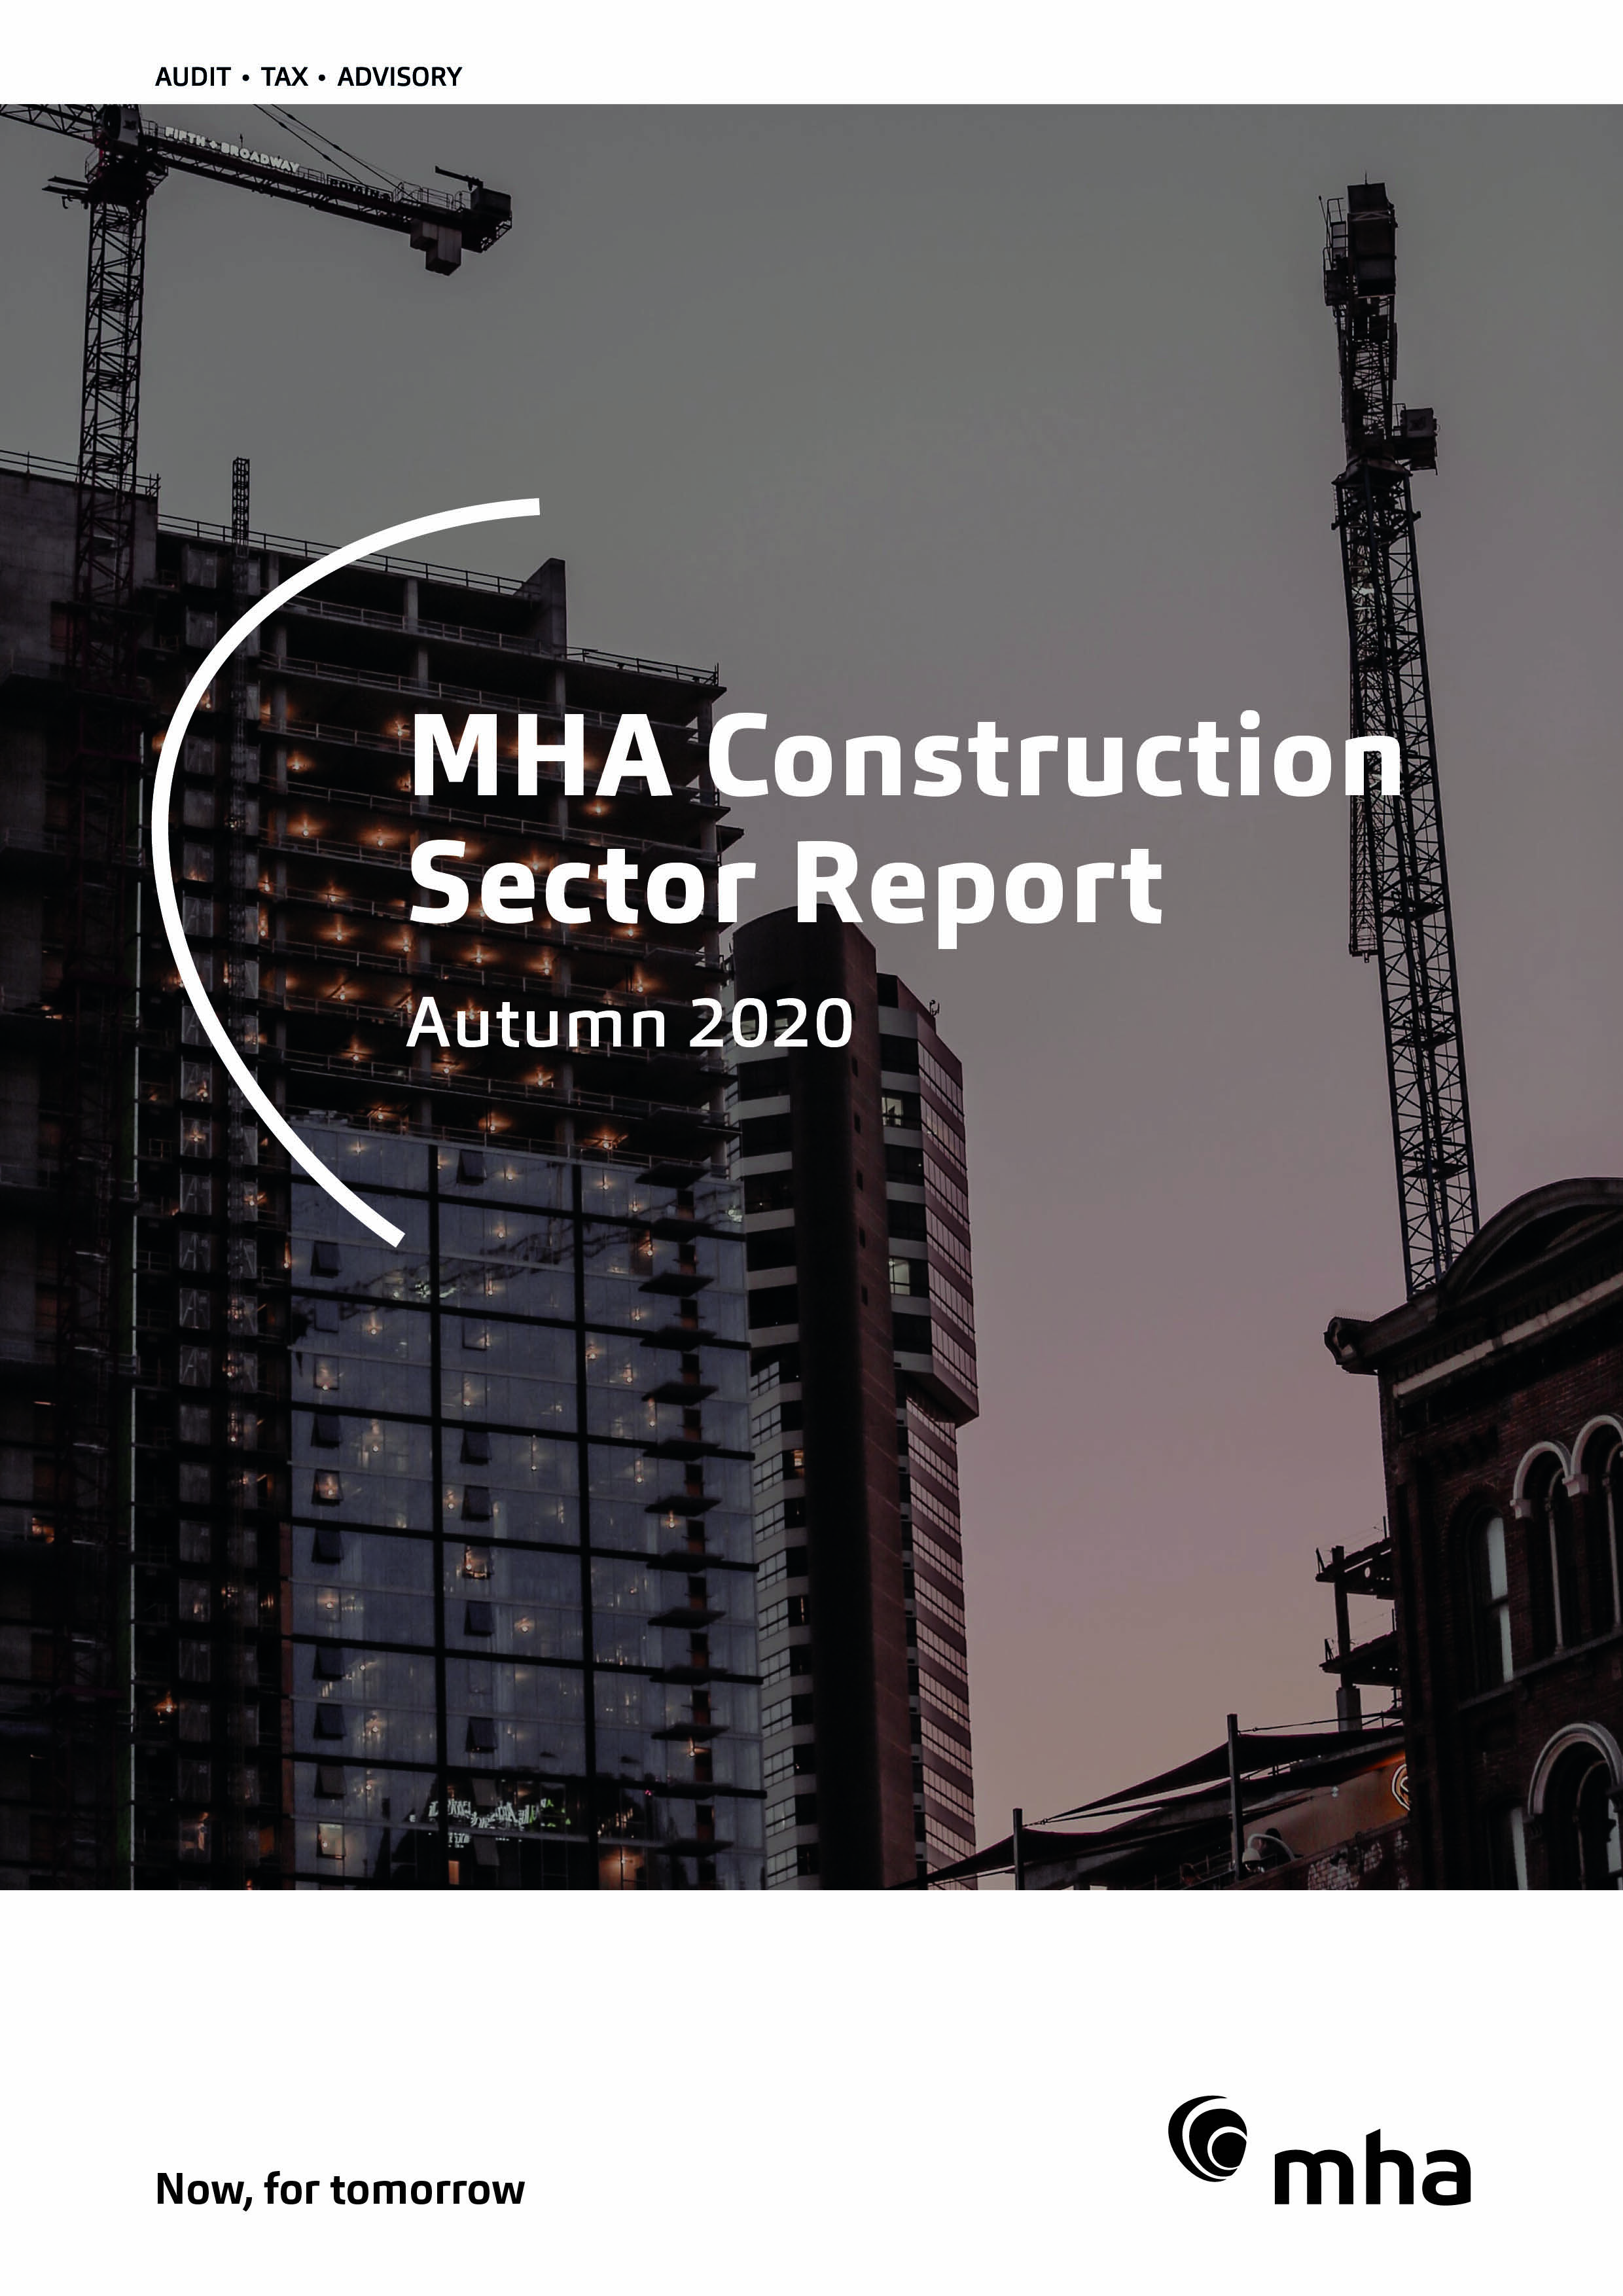 MHA Construction Sector Report 2020